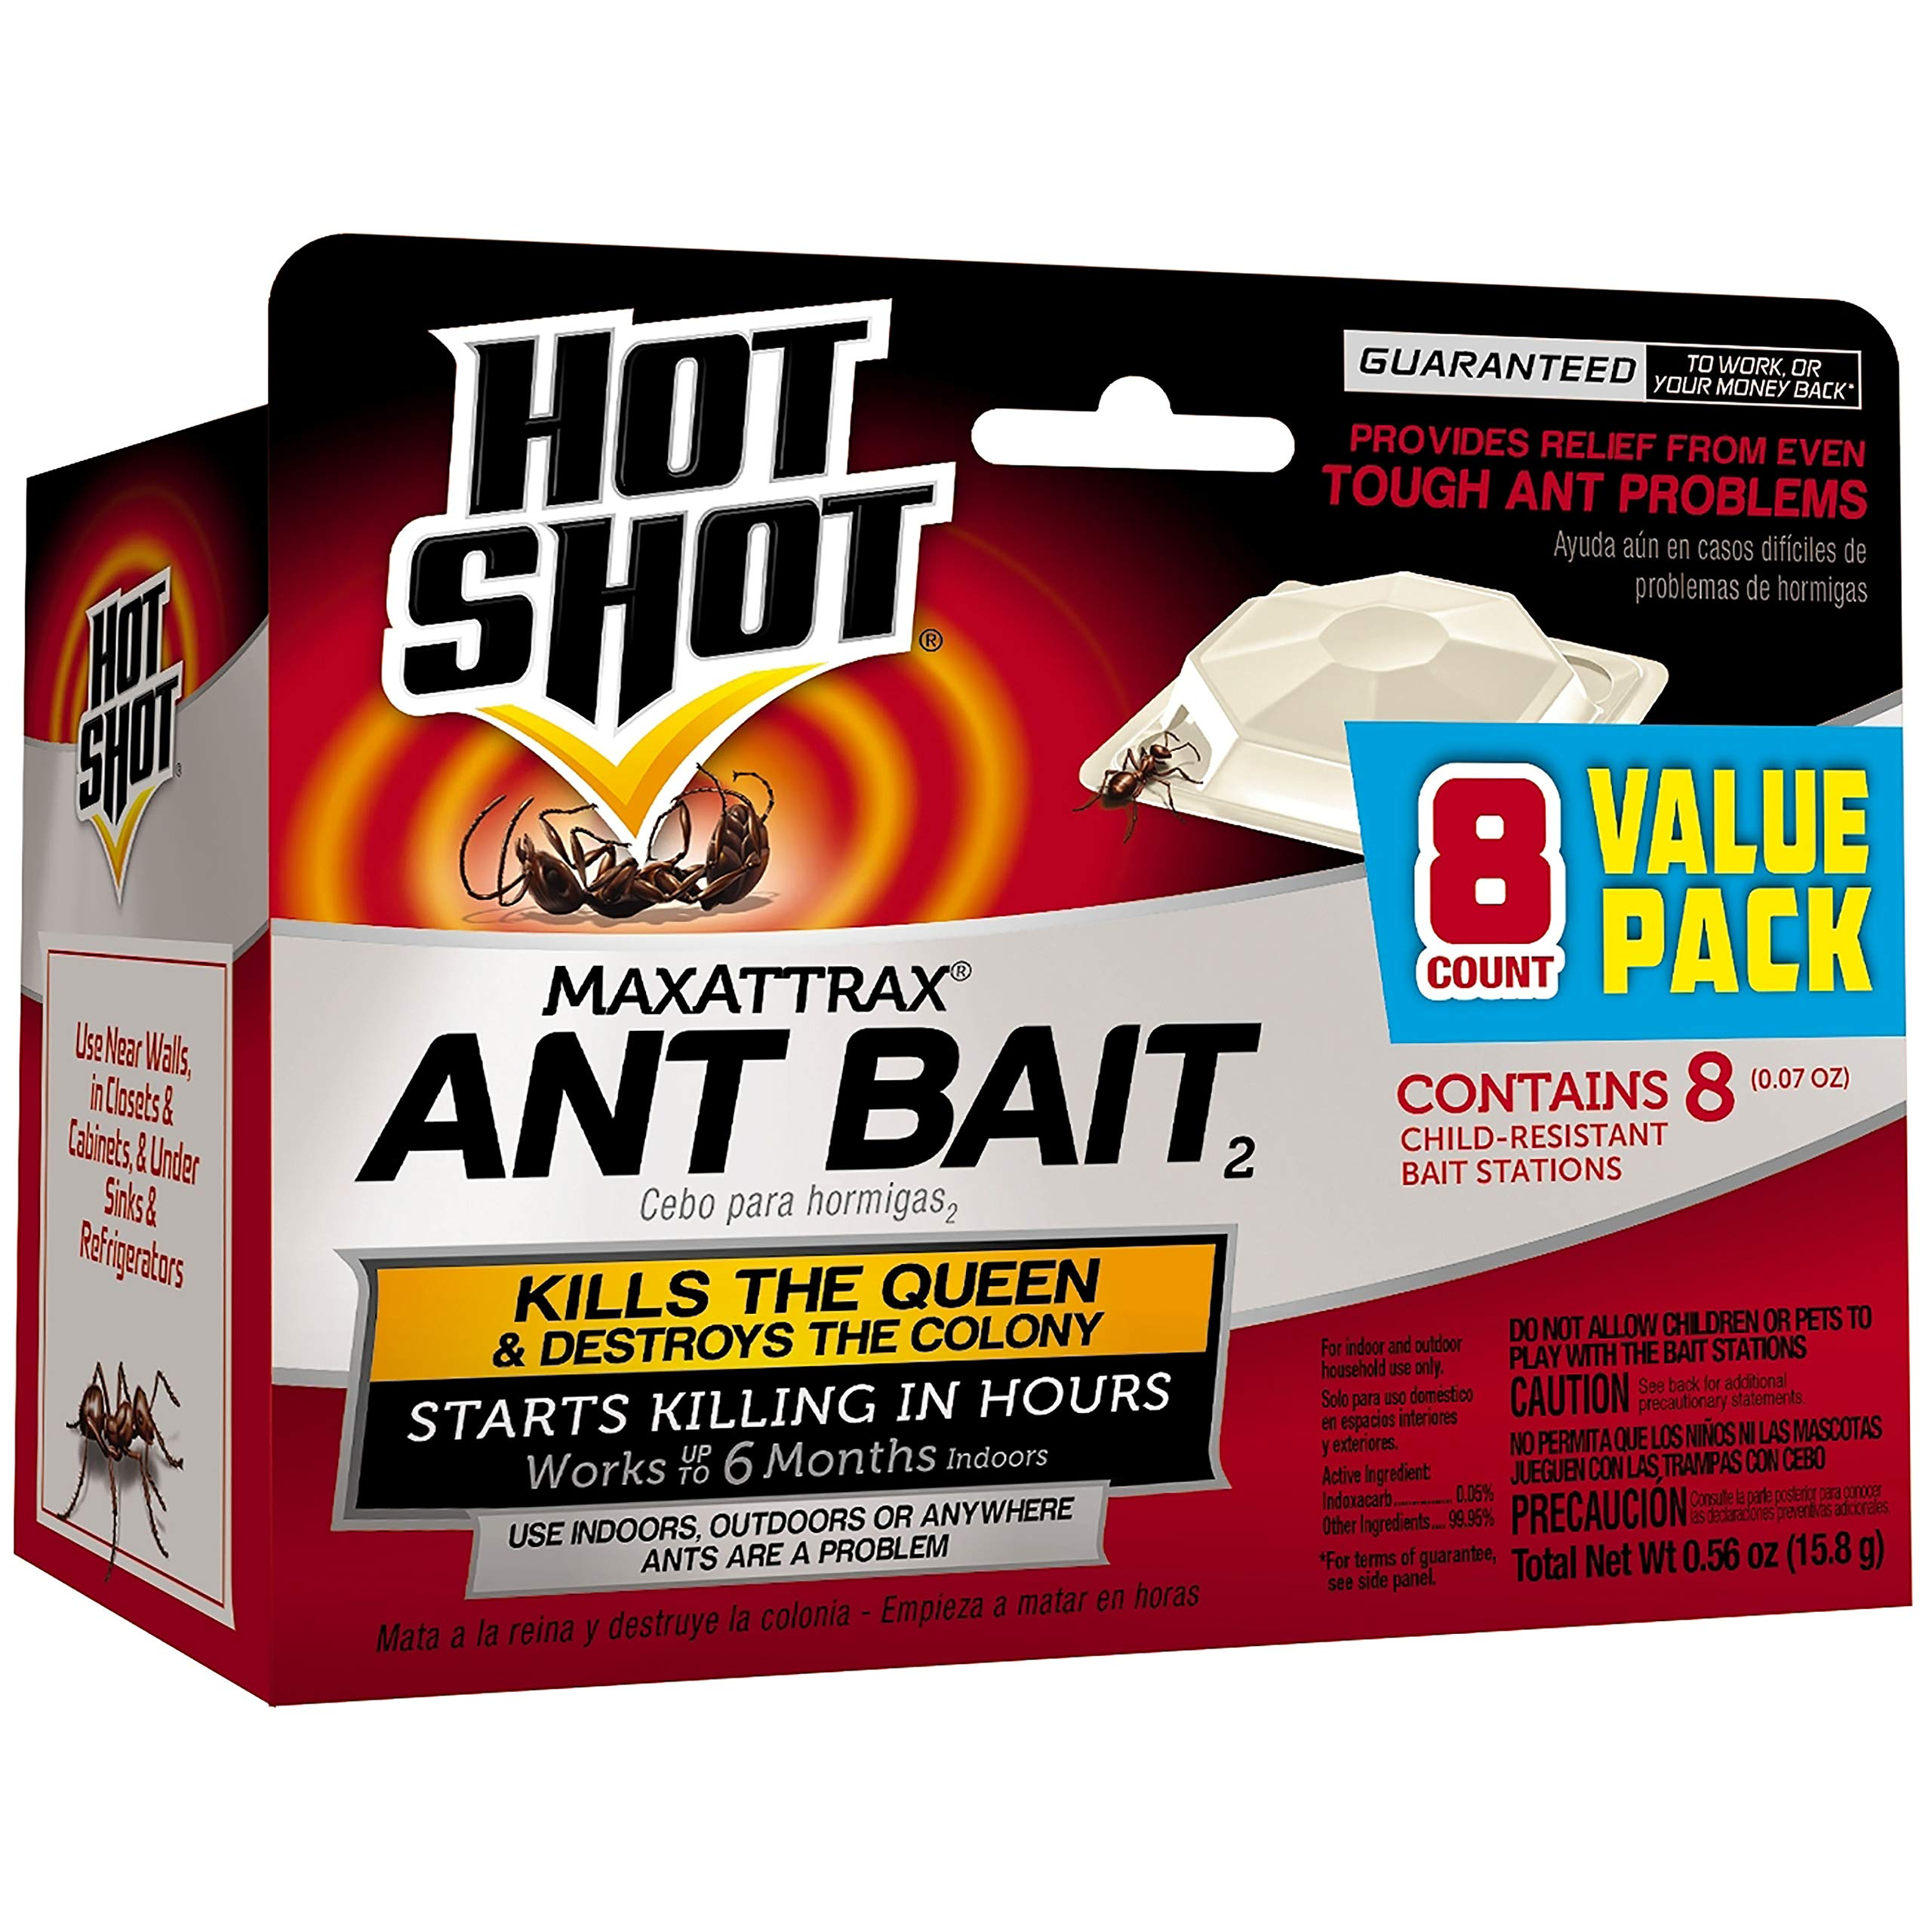 Hot Shot MaxAttrax Ant Bait2, 8-Count, 6-Pack by Hot Shot